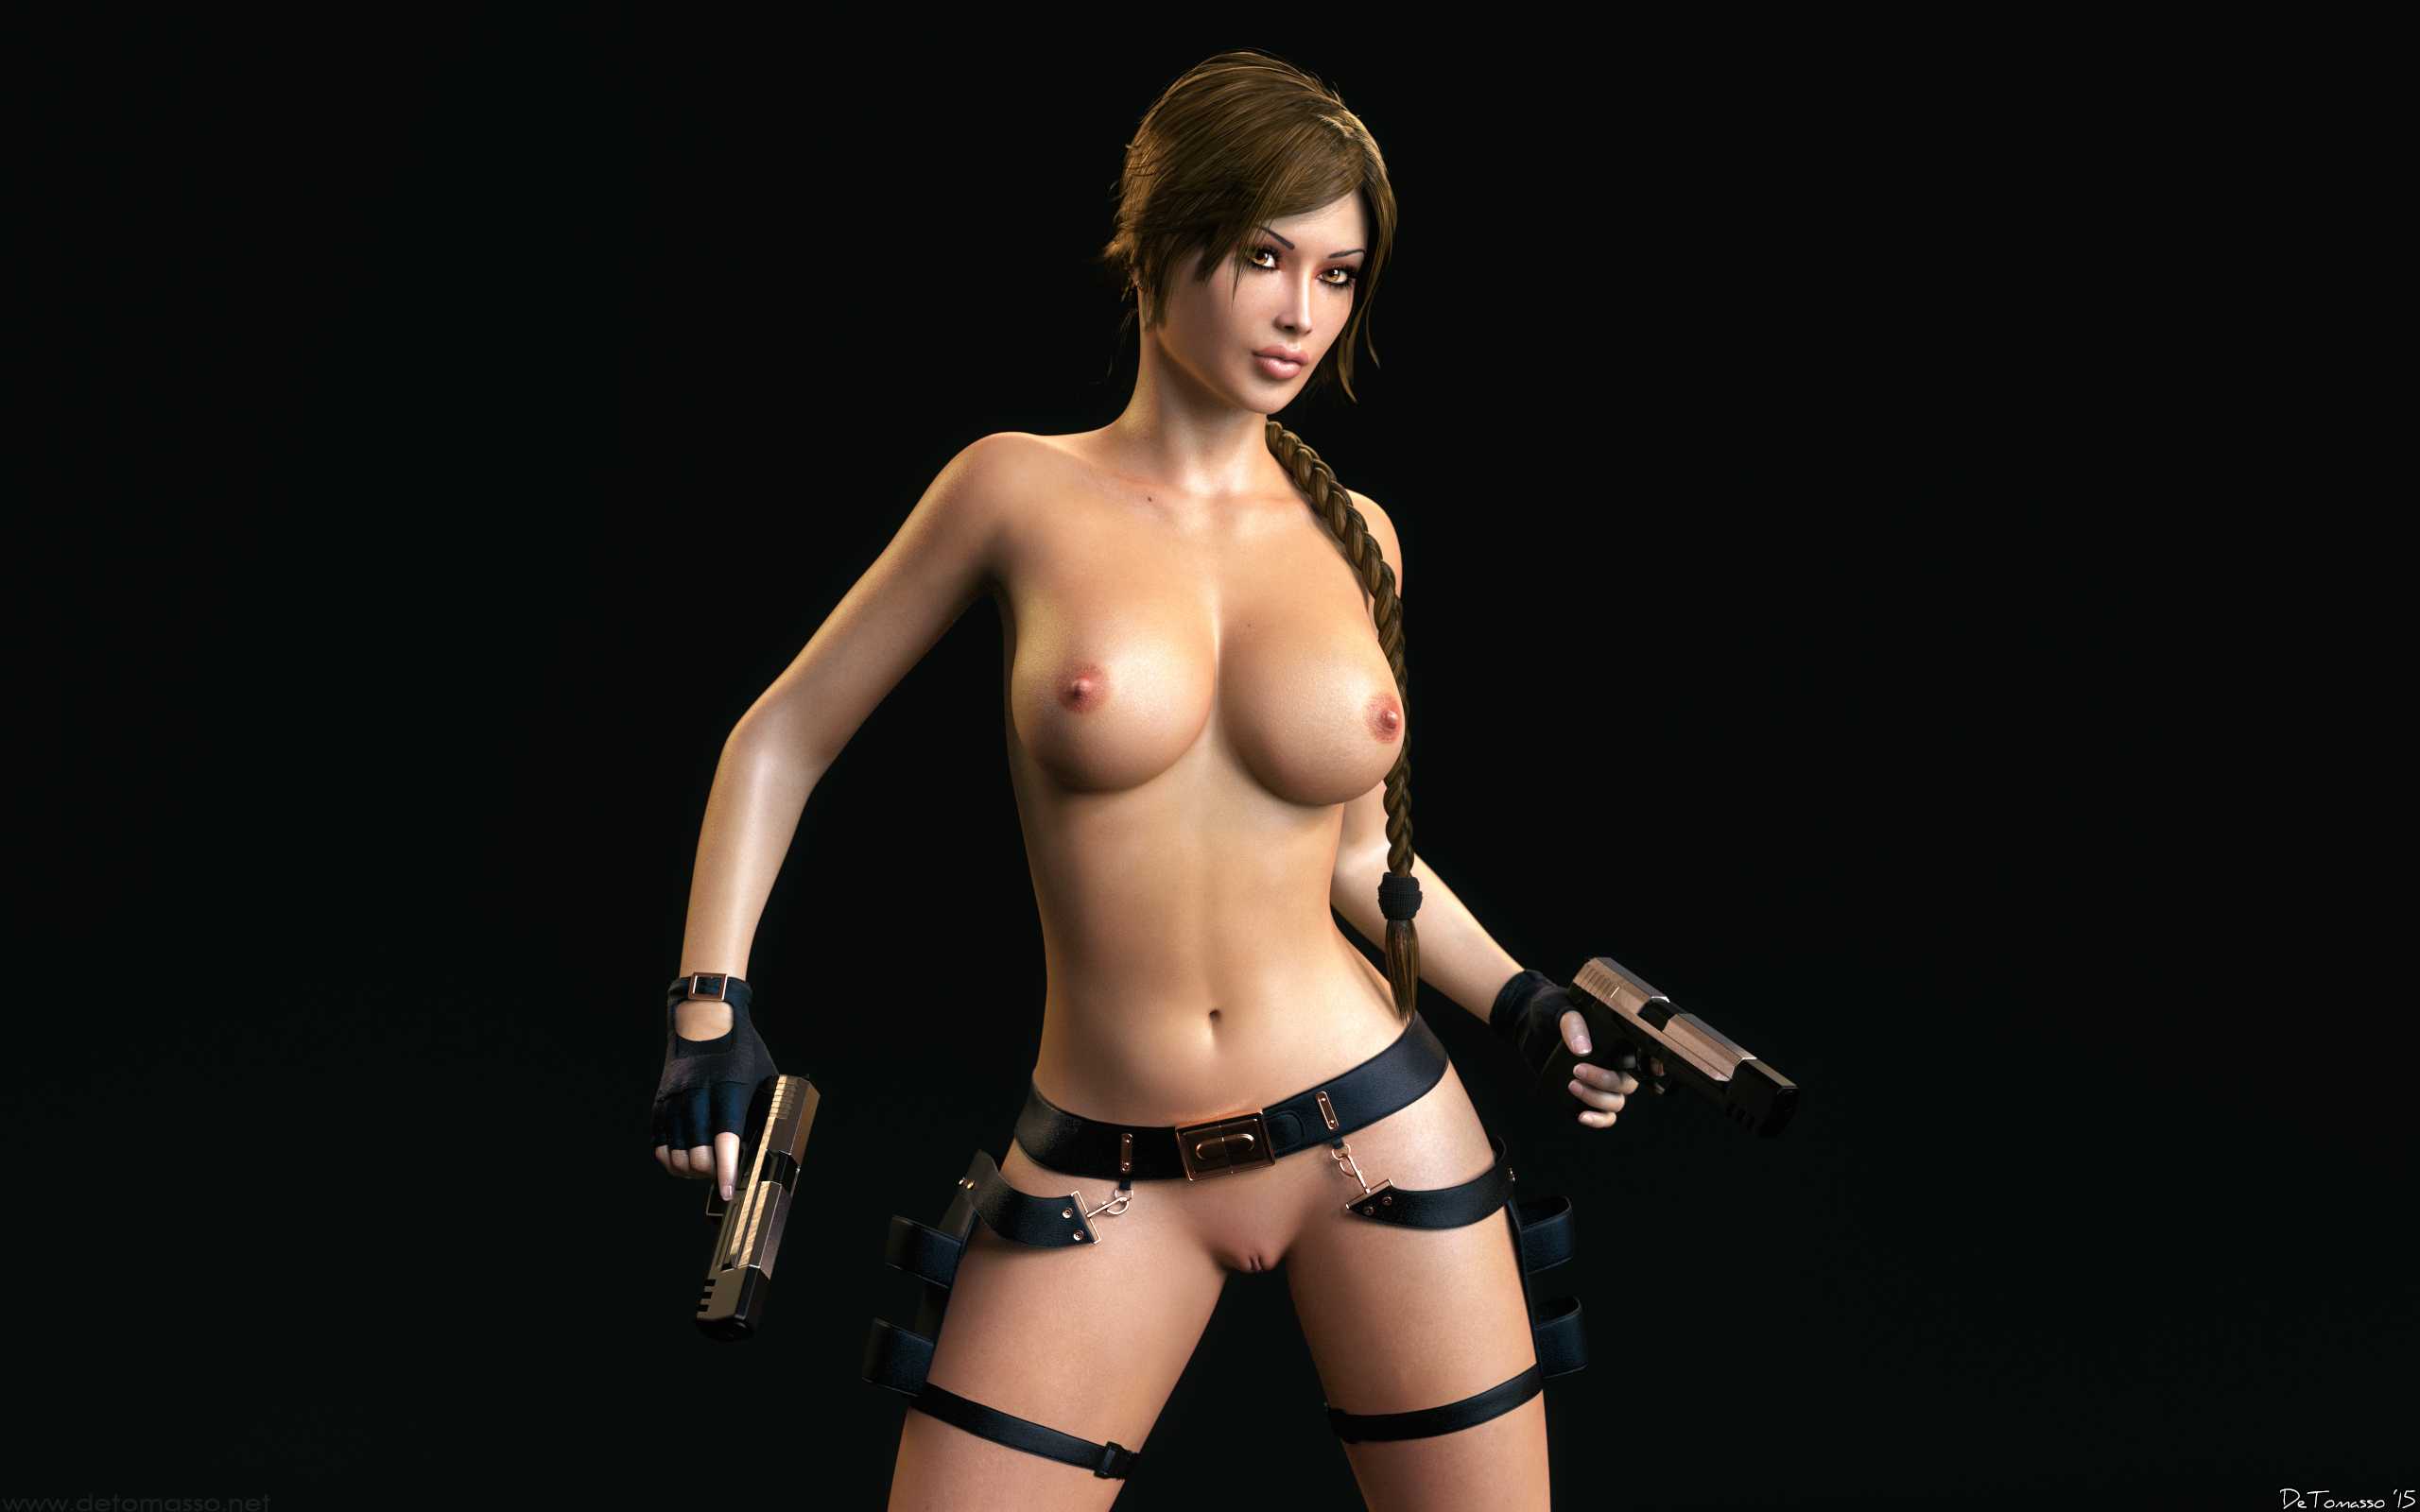 Naked video game characters